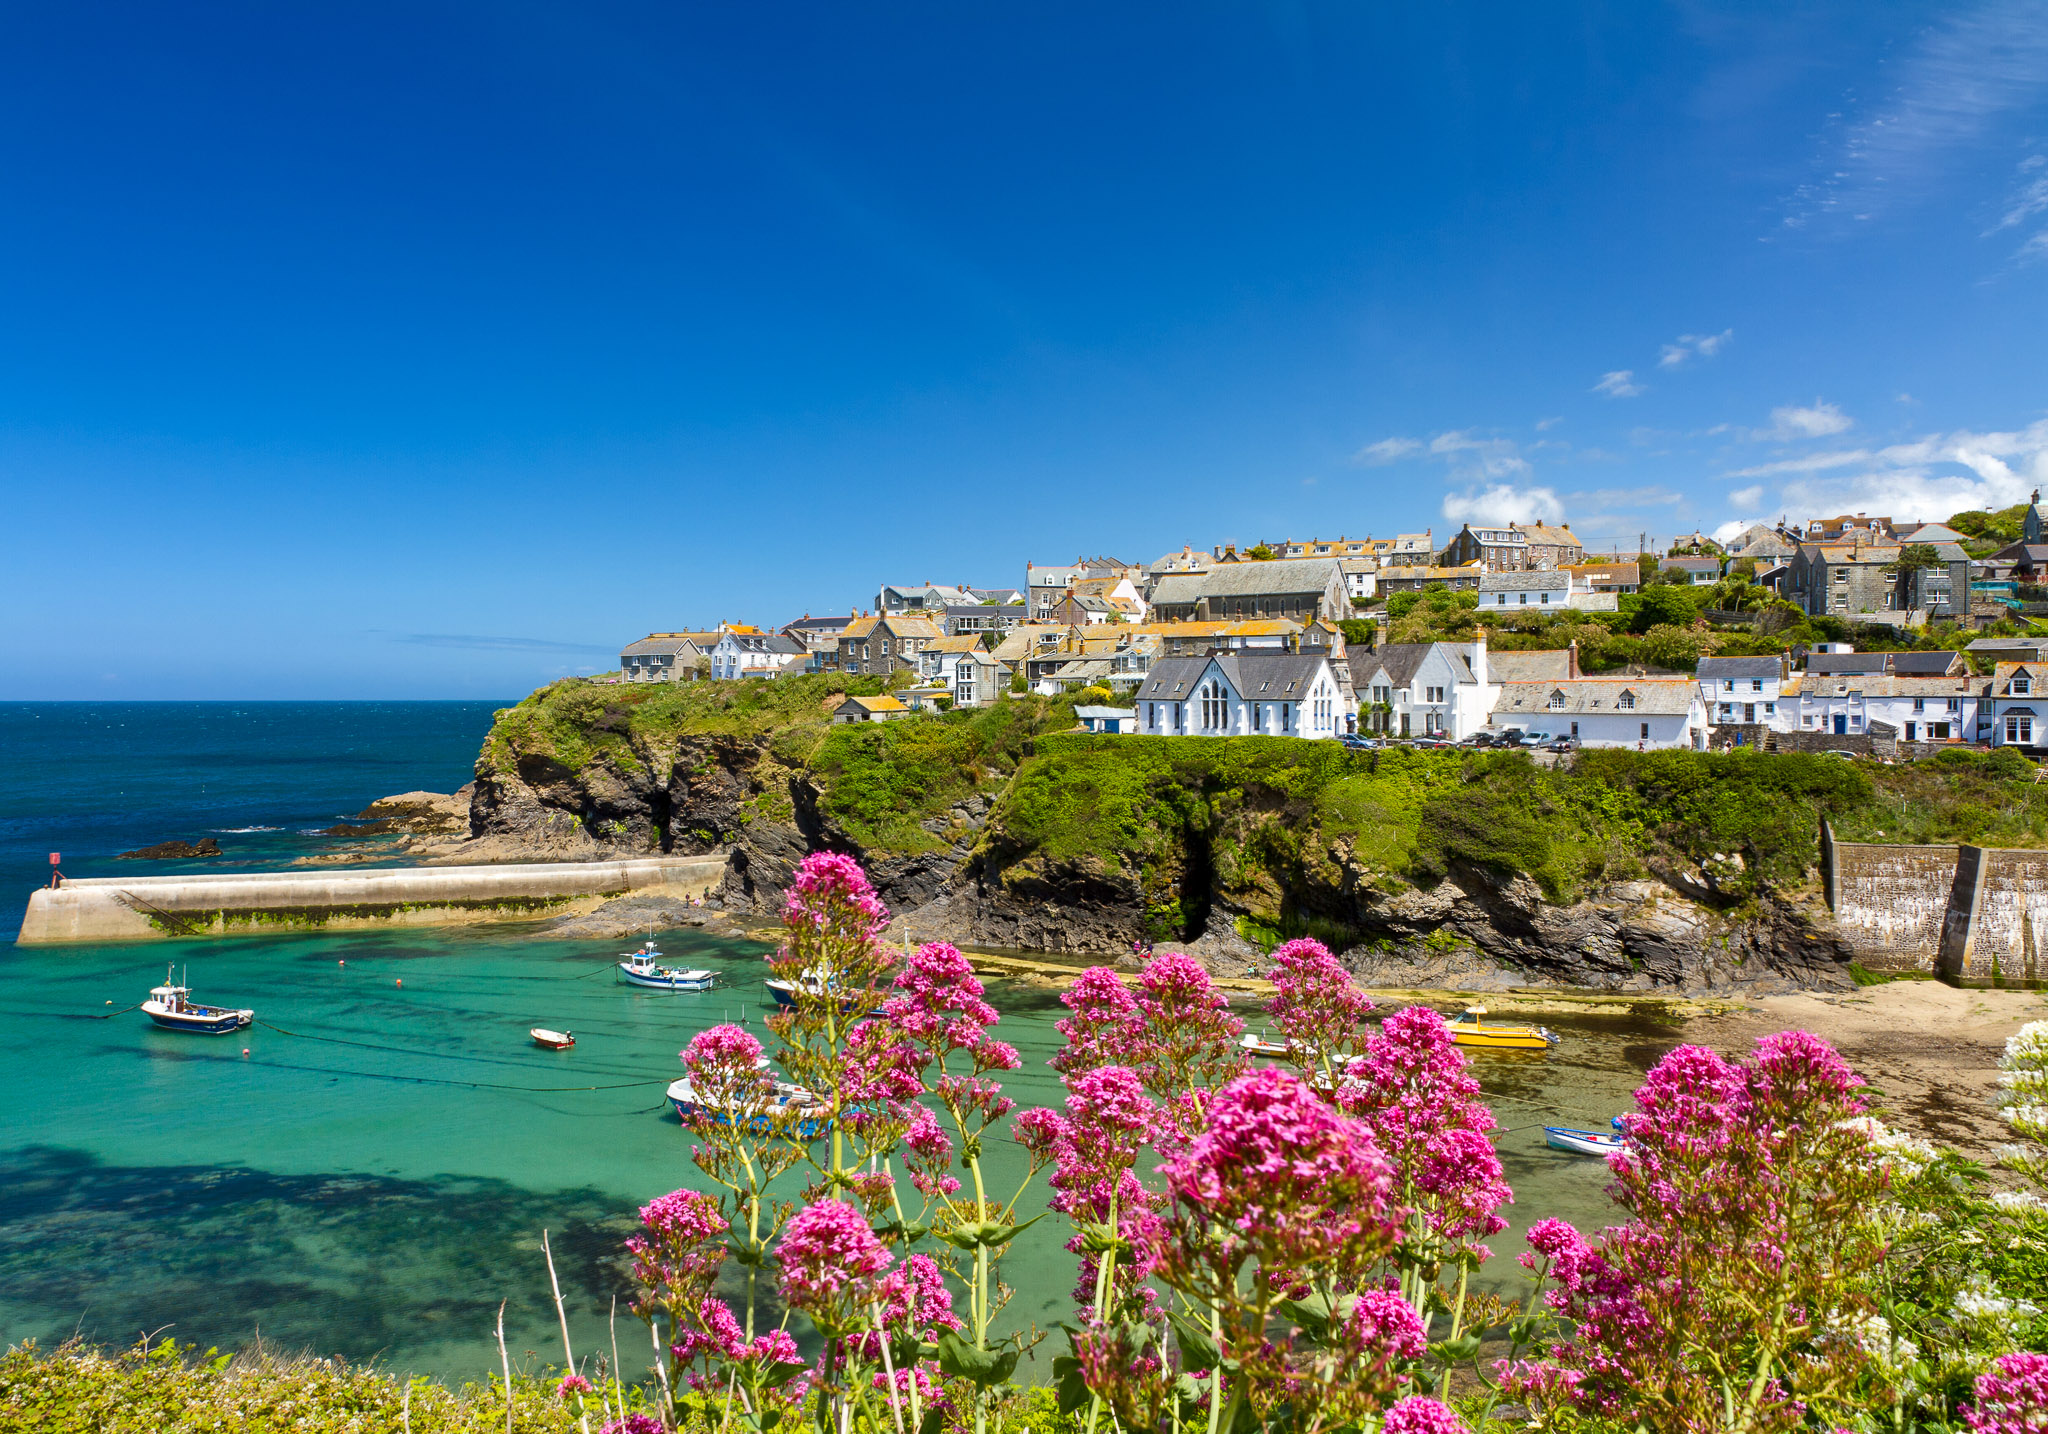 Wildflowers at Port Isaac Harbour